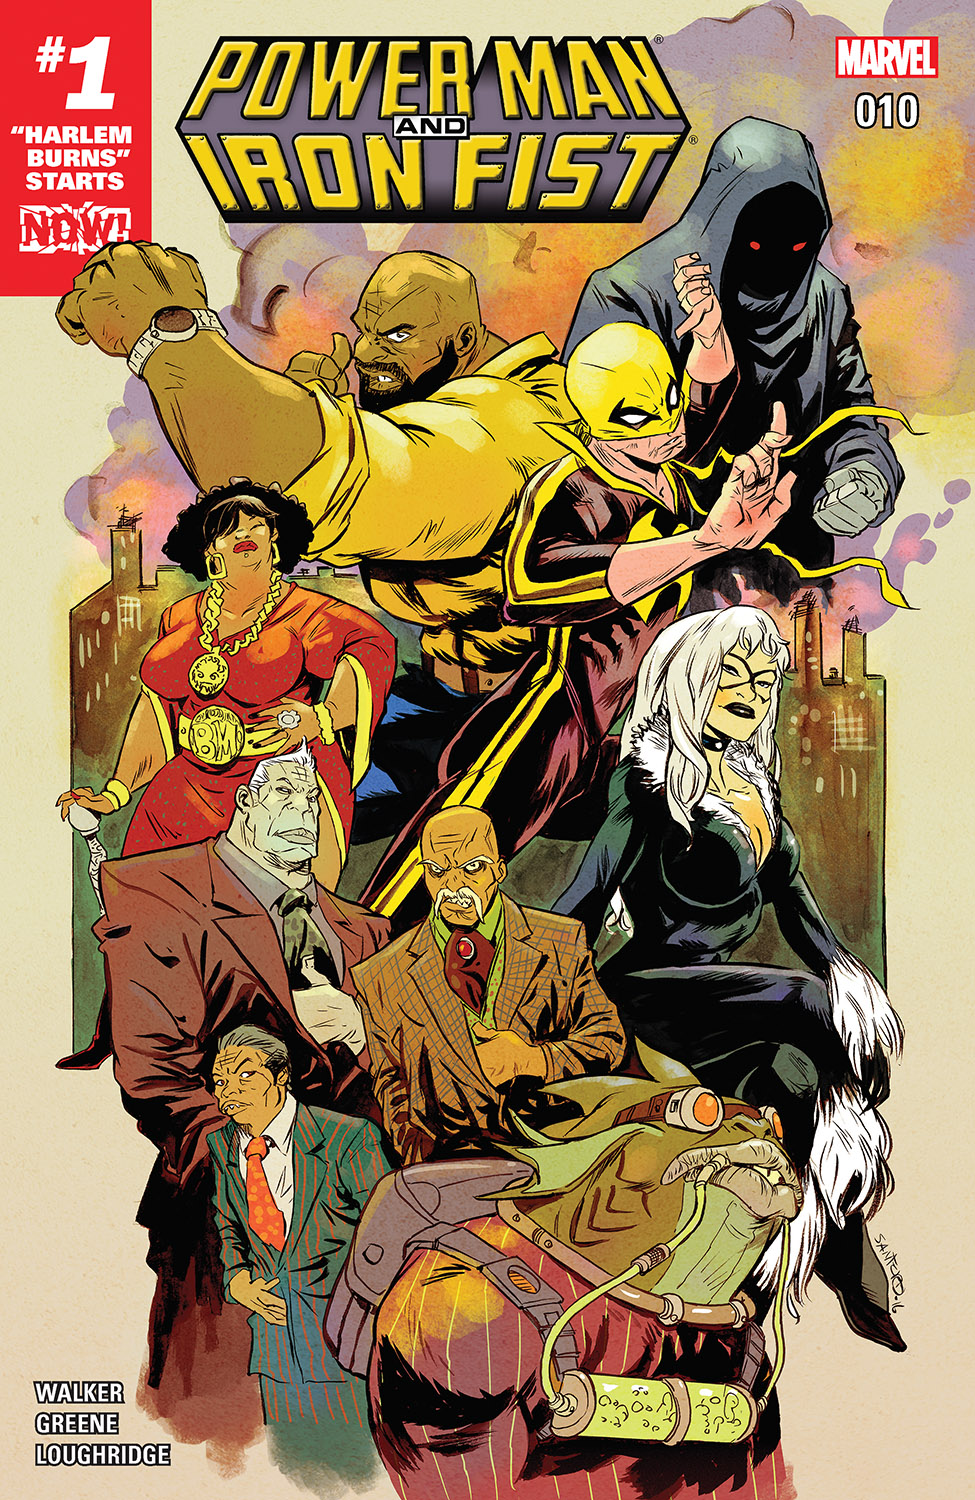 Power Man and Iron Fist (2016) #10